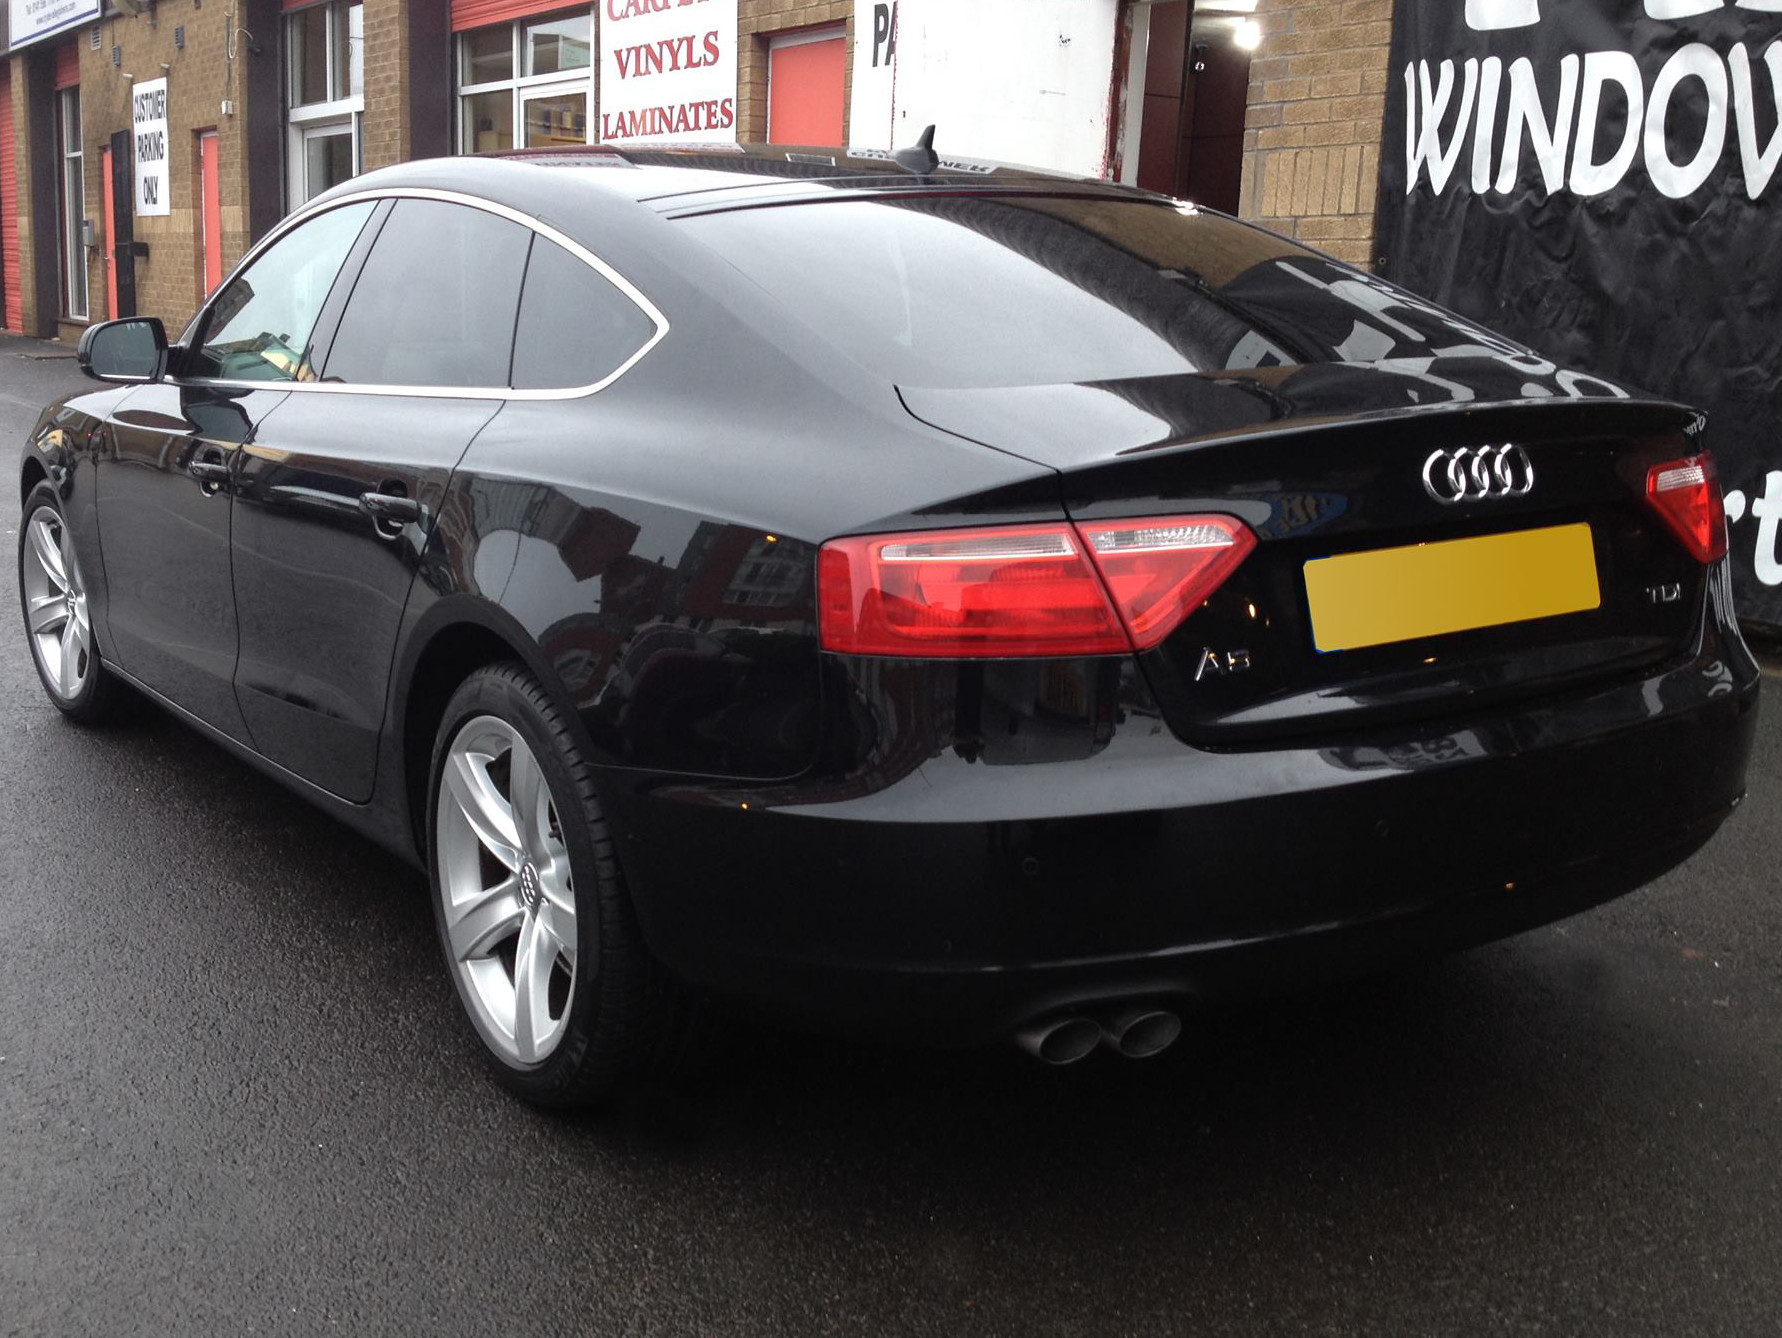 Car window tints fitted on an Audi A5 Sporthatch